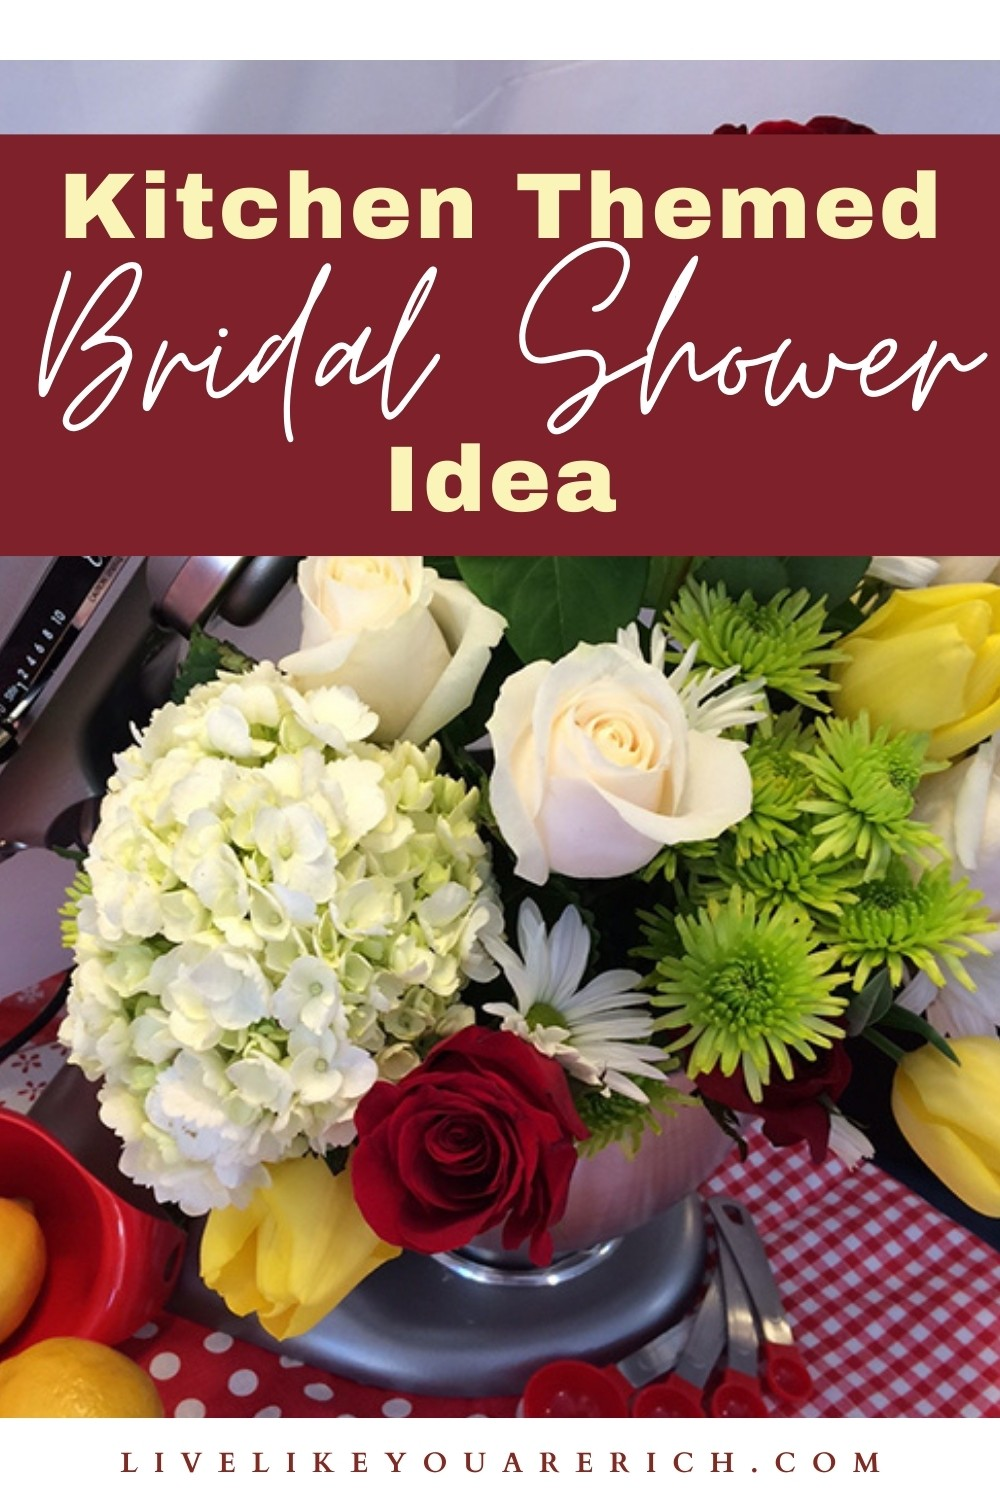 Looking for inexpensive bridal shower ideas? You have to see this simple, inexpensive, fun, and cute kitchen themed bridal shower idea. These gave you a few great ideas on throwing a bridal shower party on a budget. #bridalshower #bridalshowerideas